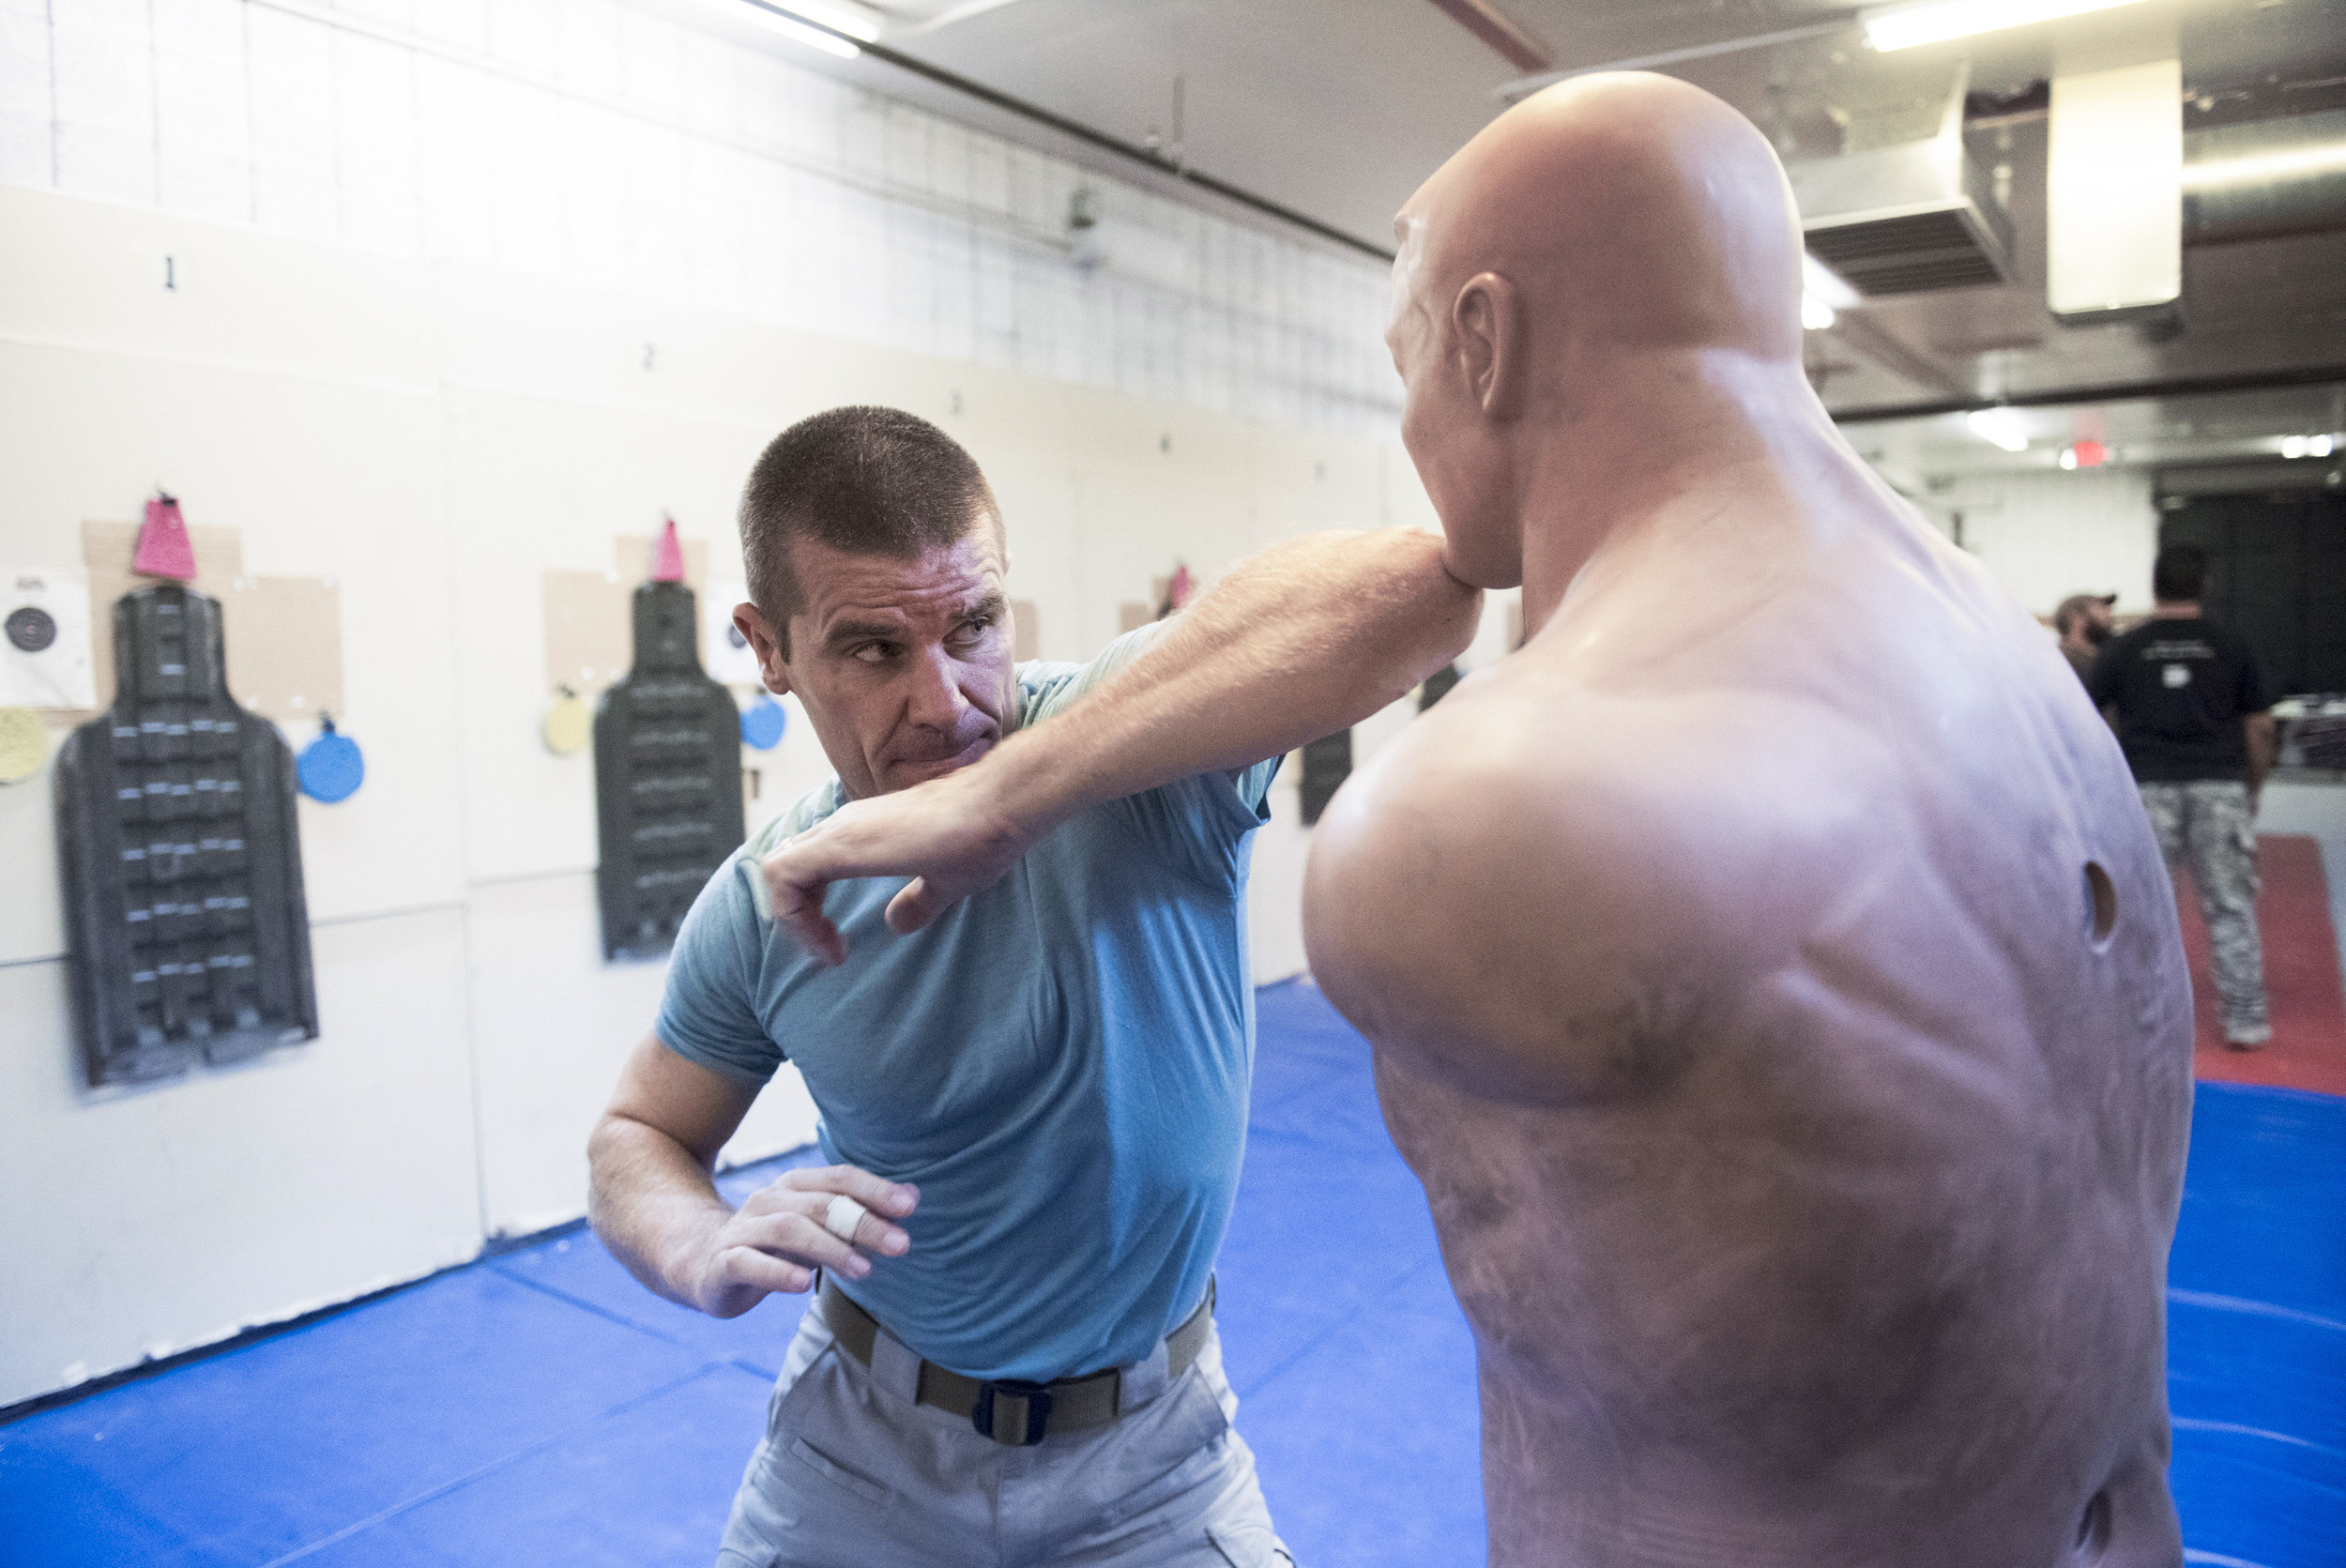 John Ivens demonstrates hand to hand combat techniques during the bodyguards adventure course at Vegas Tactical Adventures in North Las Vegas Tuesday, Aug. 18, 2015. (Jason Ogulnik/Las Vegas Review-Journal)